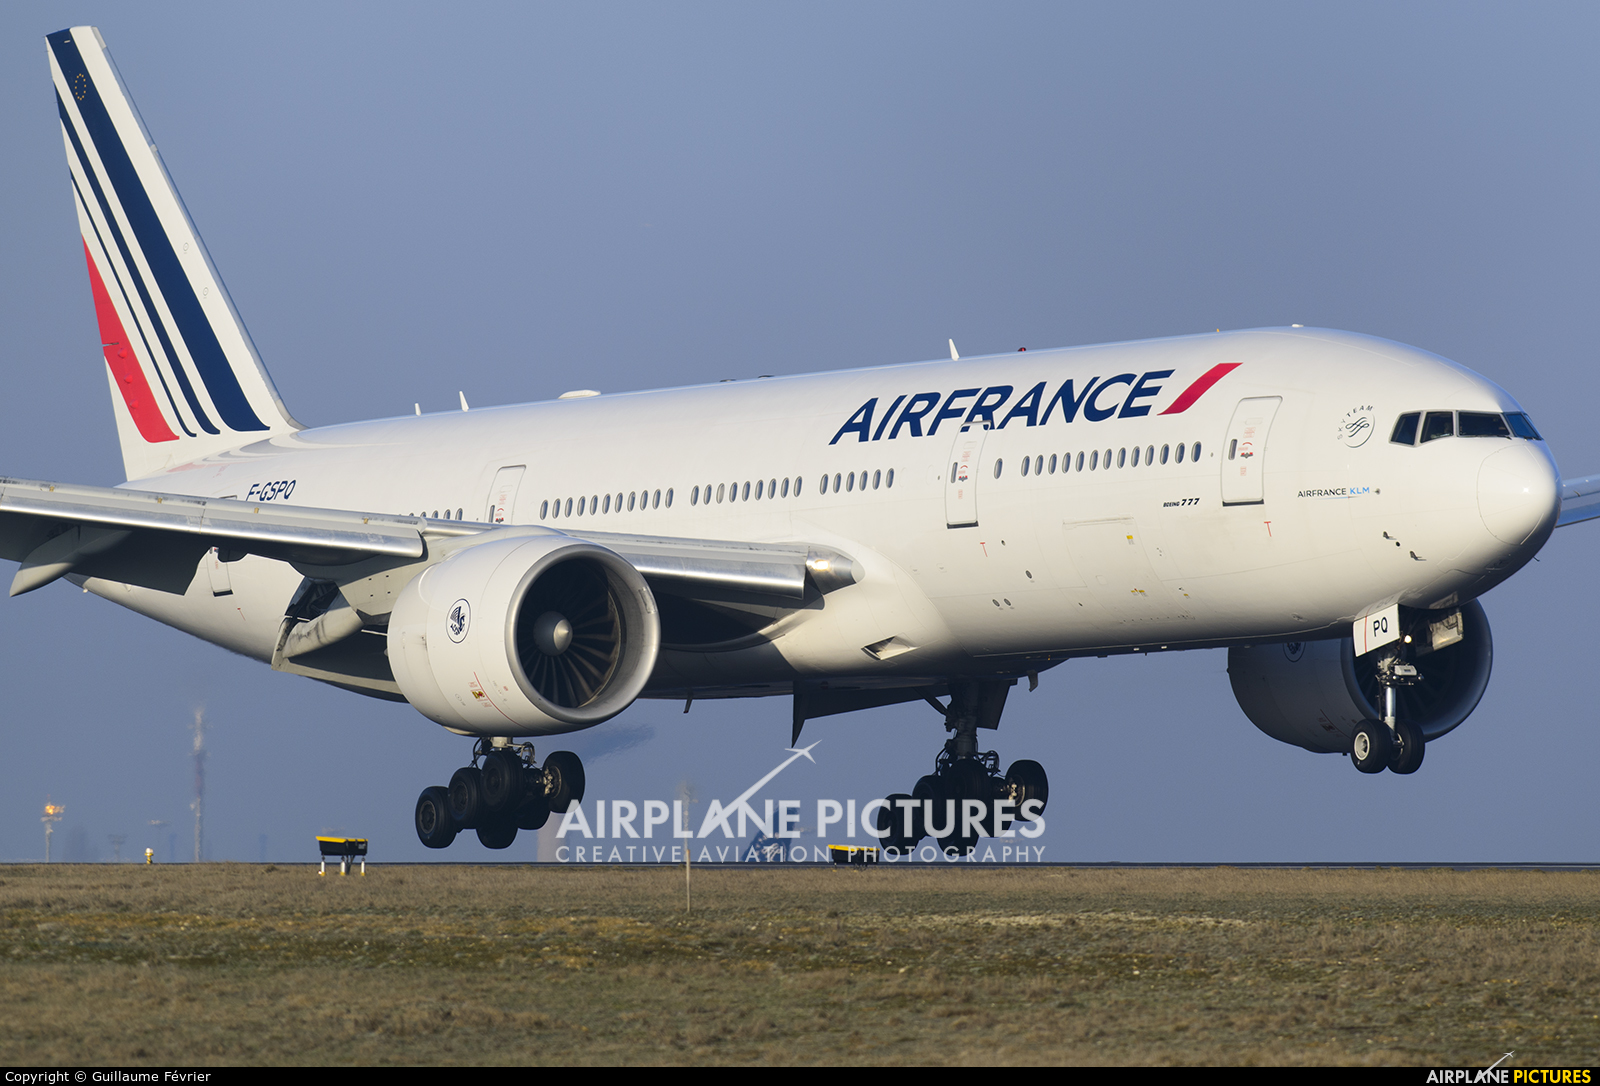 Air France F-GSPQ aircraft at Paris - Charles de Gaulle